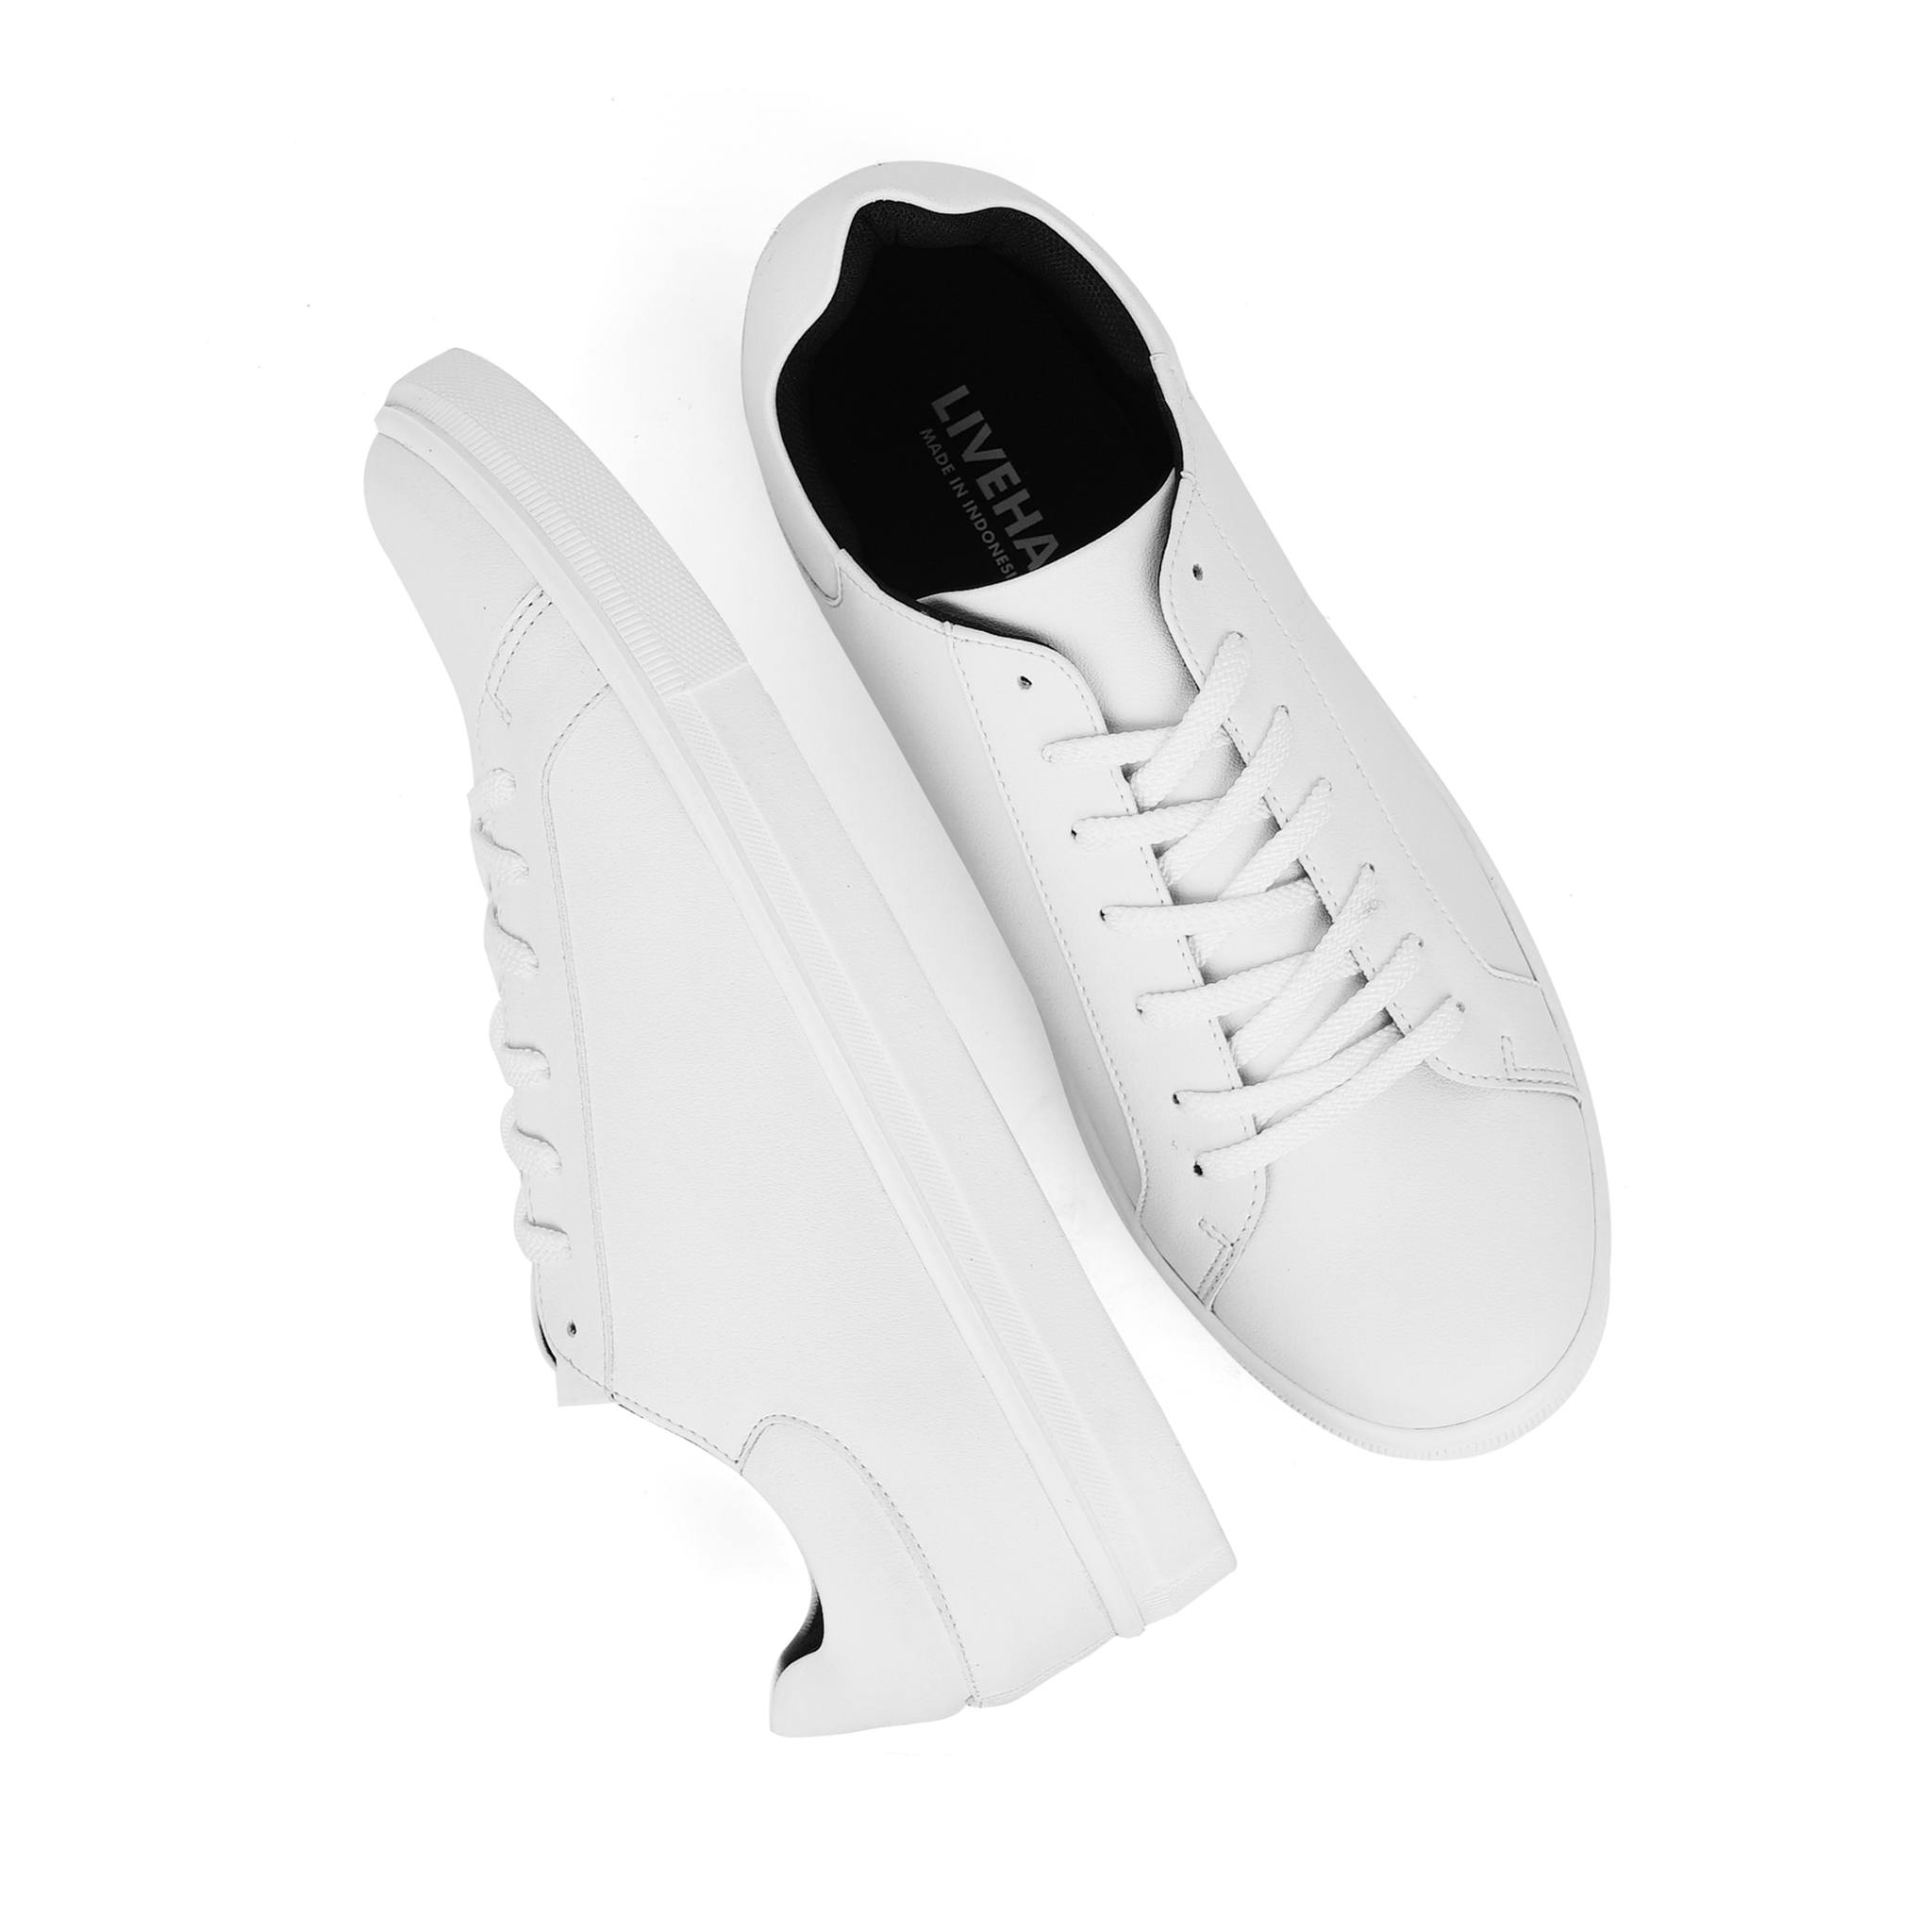 Opco Sneakers All White